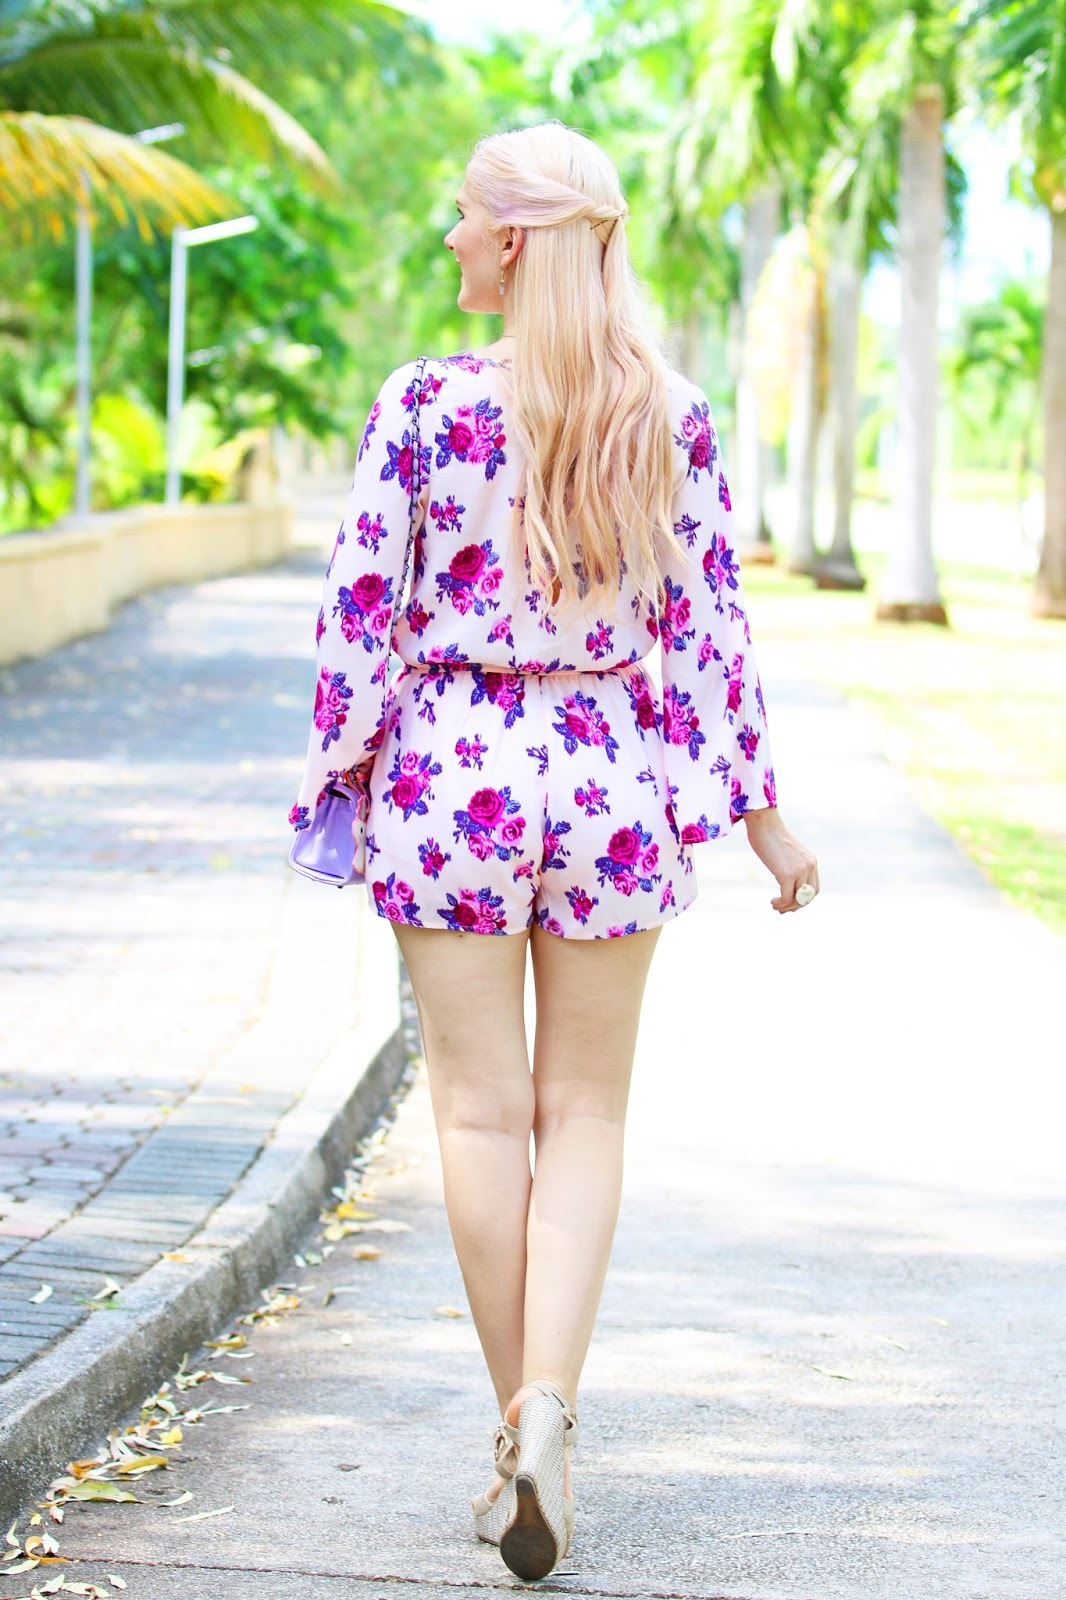 Girly Spring Romper Outfit